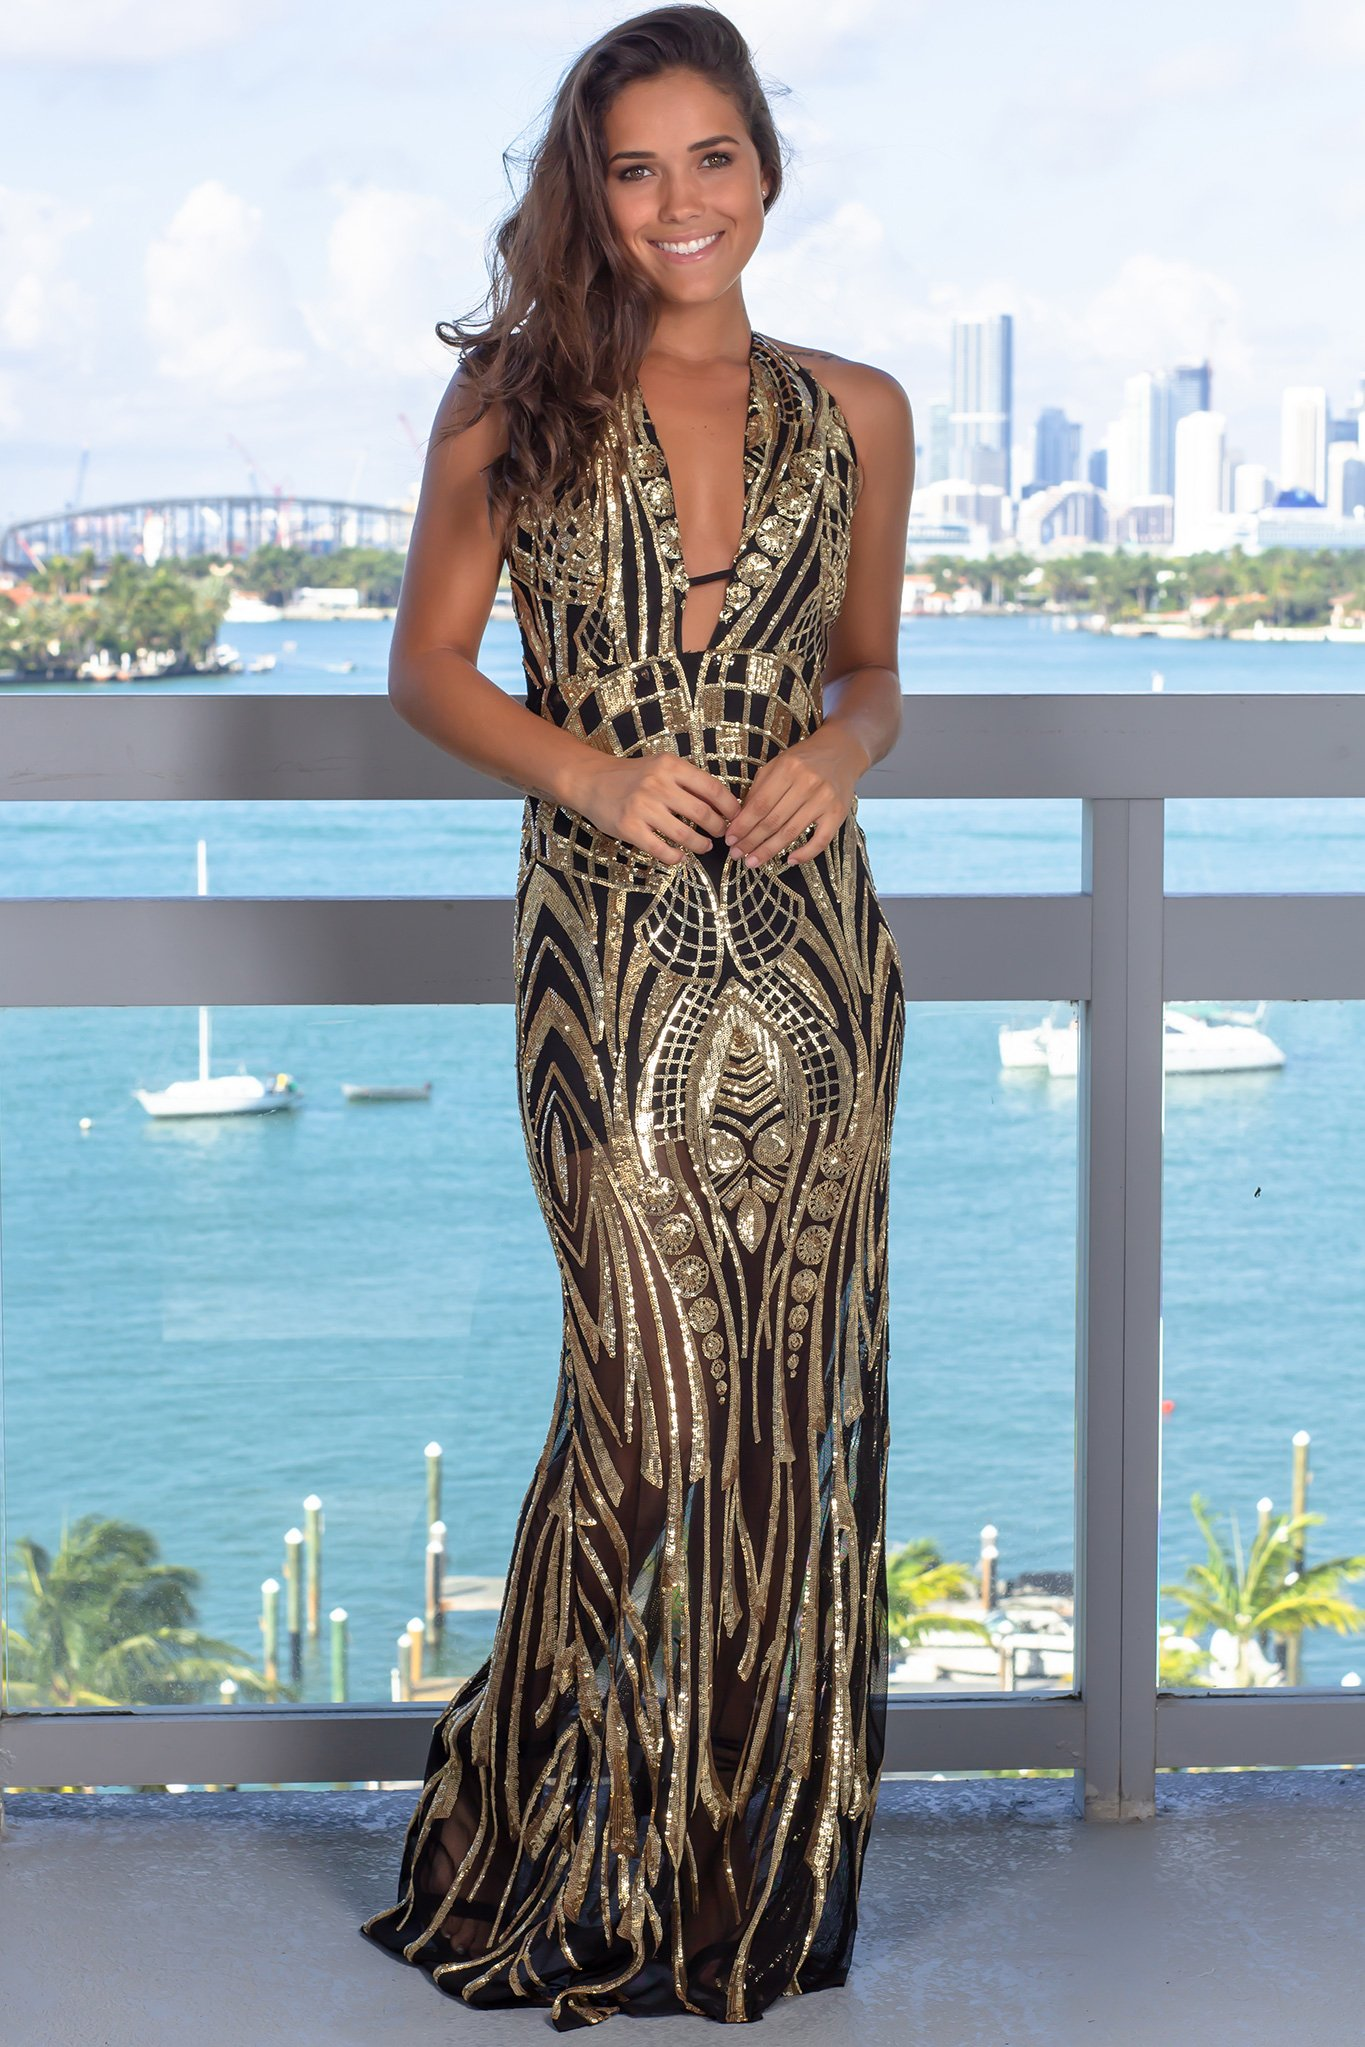 f283cda3 This Black and Gold Halter Neck Maxi Dress is stunning! The sequin  detailing is gorgeous